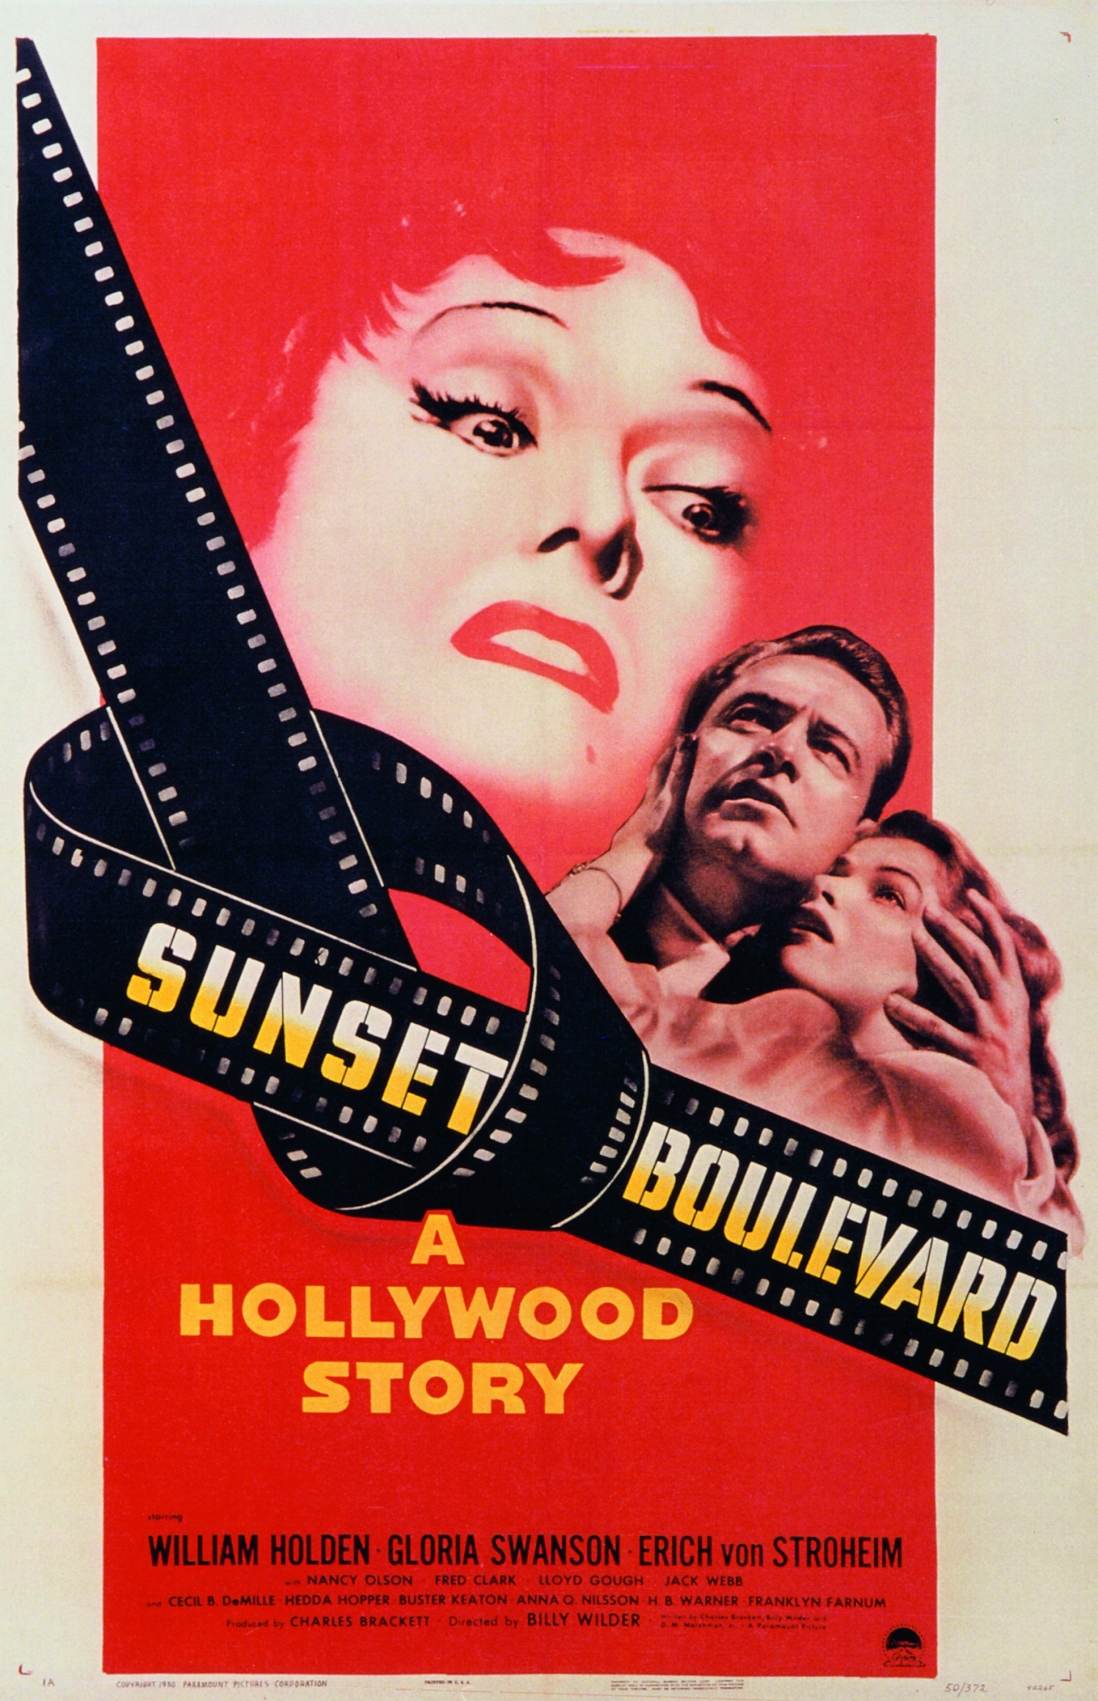 Movie poster showing the faces of the film's cast. Text reads: Sunset Boulevard A Hollywood Story.